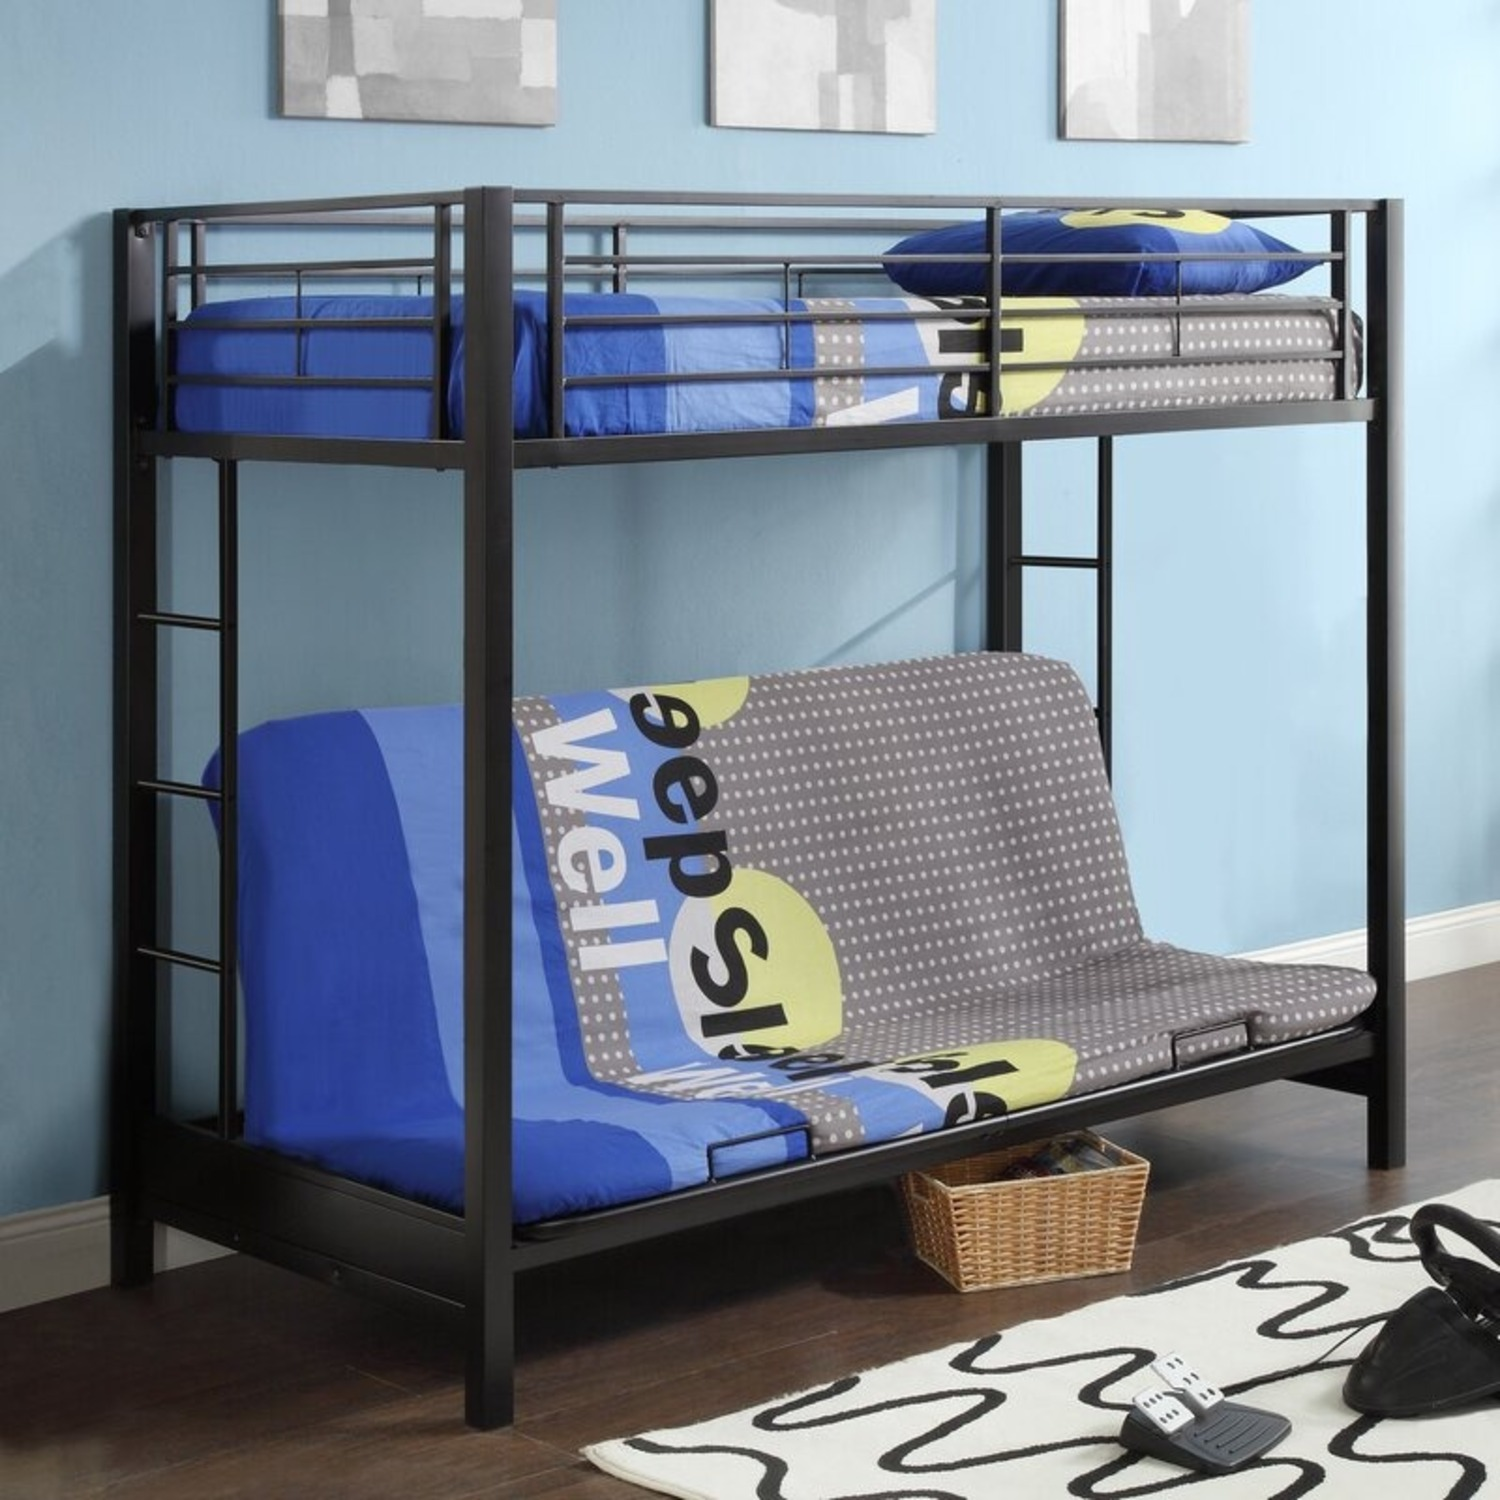 Wayfair Exmore Twin Over Full Metal (with Futon) Bunk Bed - image-1